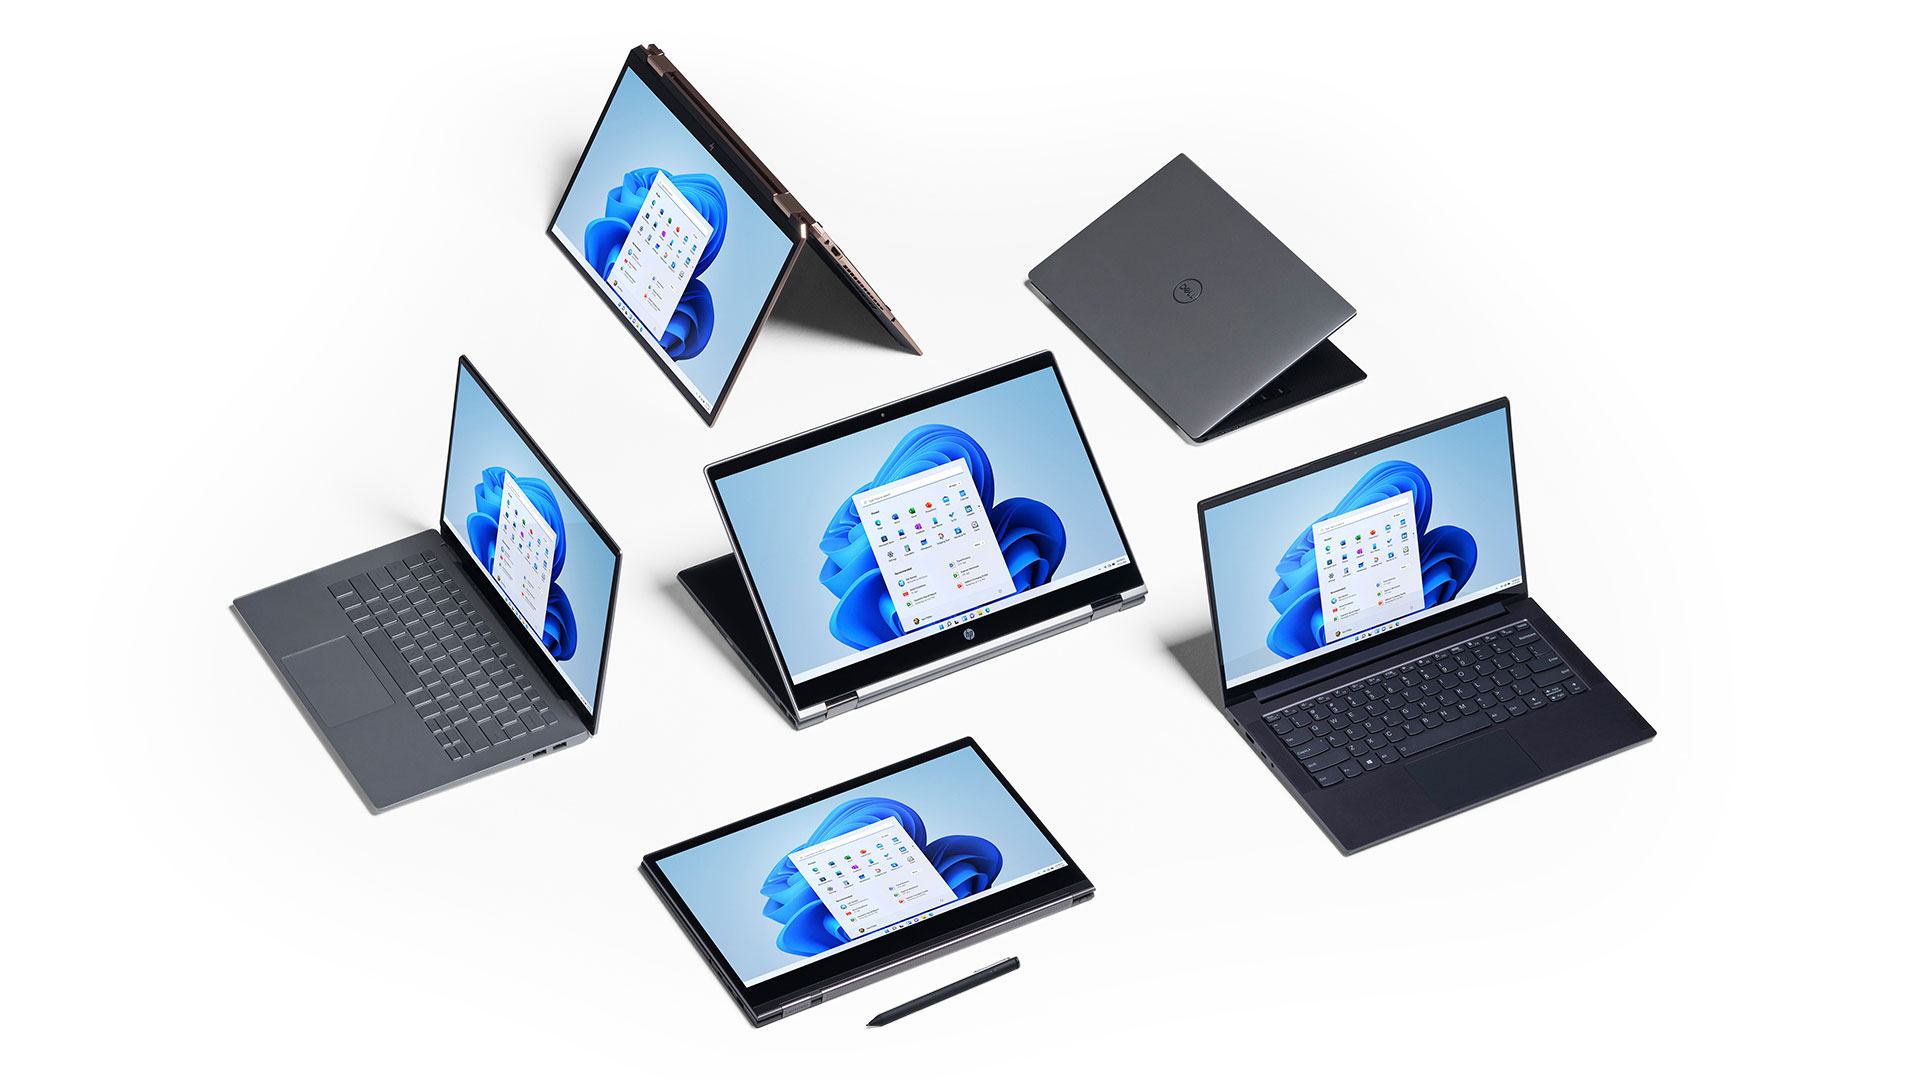 1920_Panel12_Picture_Devices.jpg